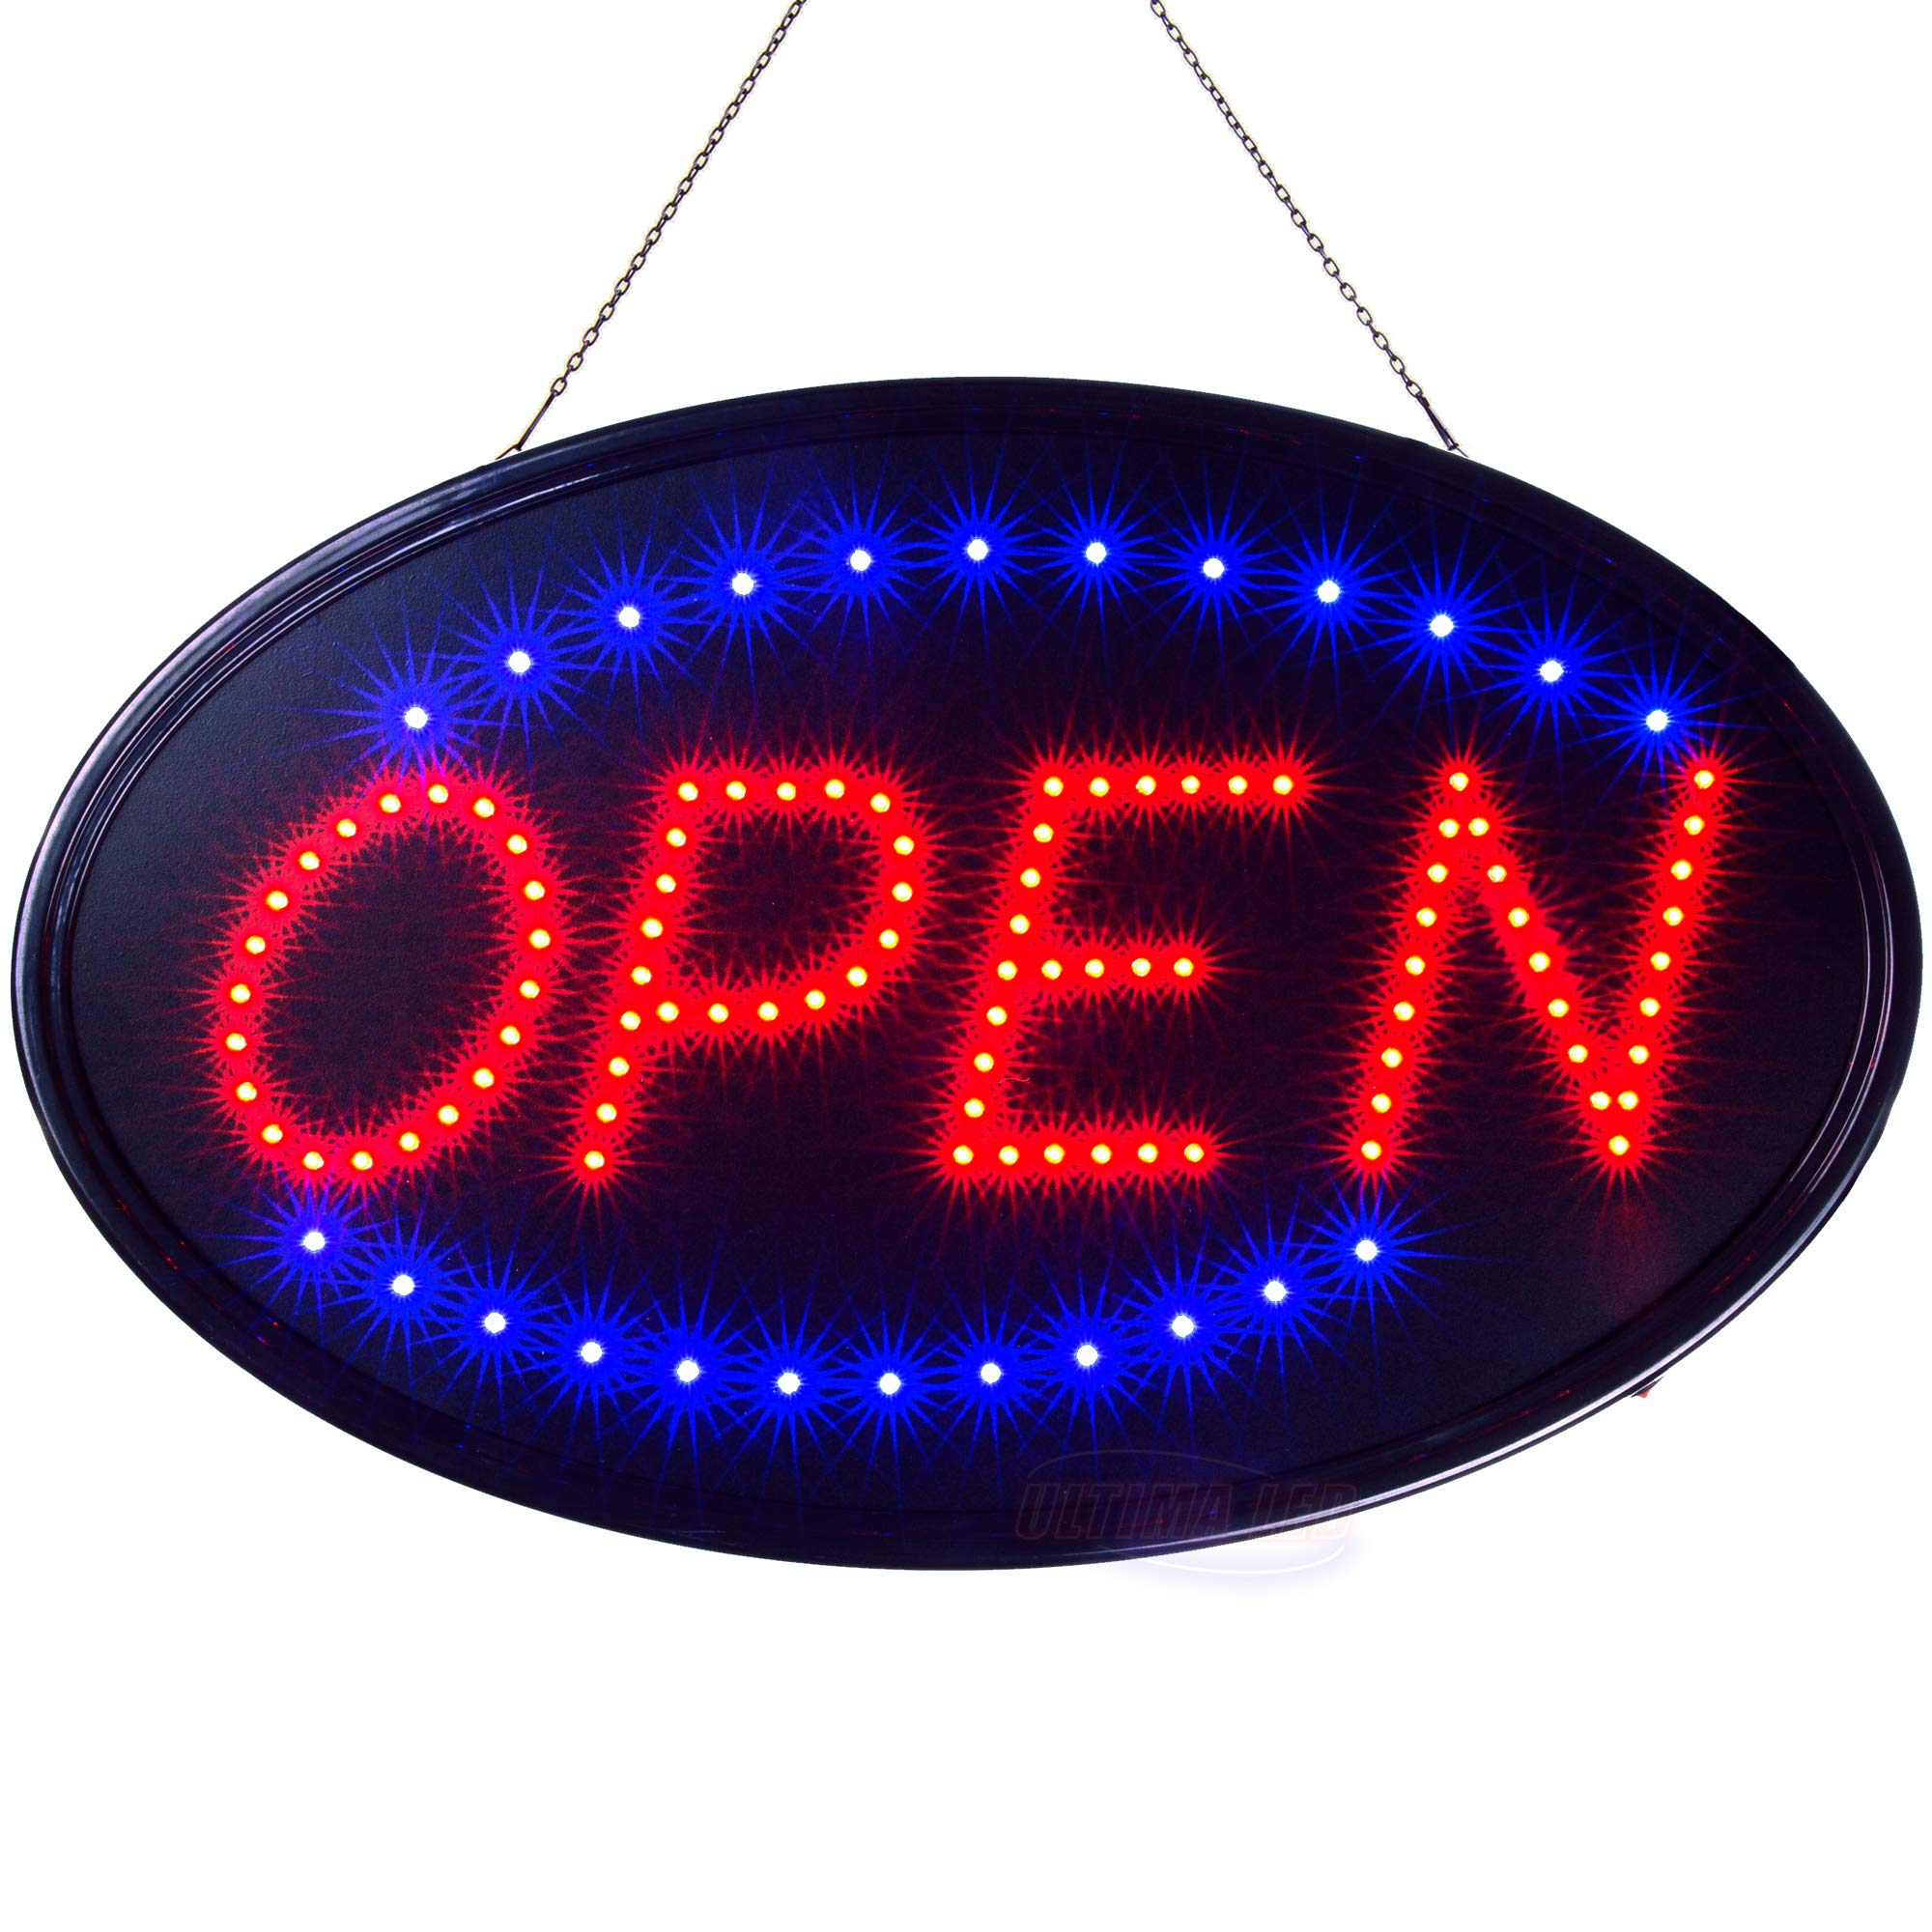 Large LED Neon Open Sign for Business: Jumbo Lighted Sign Open with Static and Flashing Modes - Electric Light up Signs for Stores, Bars, Barber Shops (23 x 14 inches, Model 3) by Ultima LED